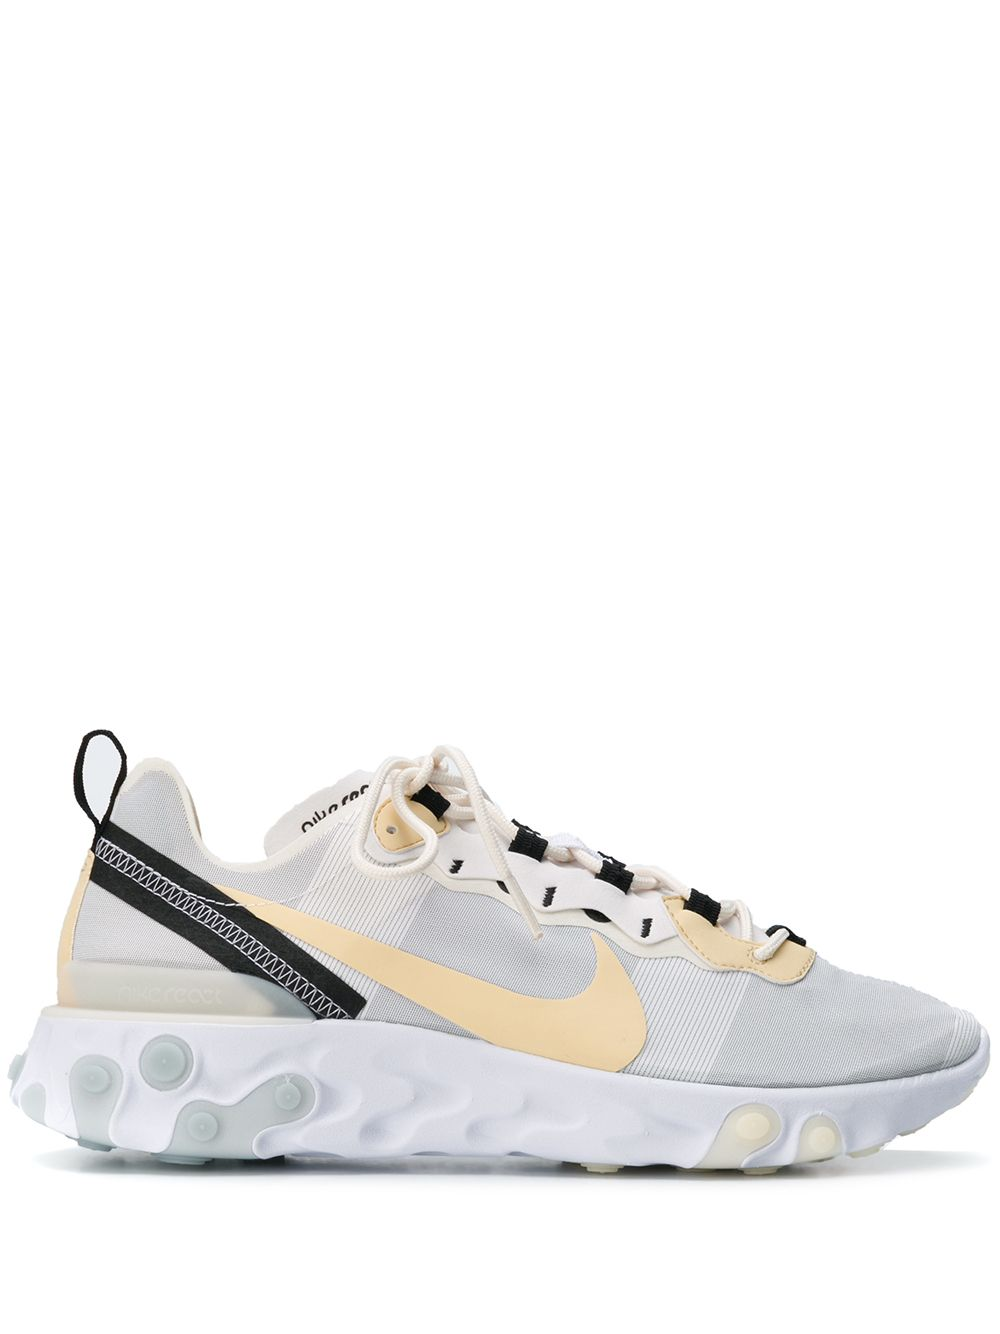 nike react trainers